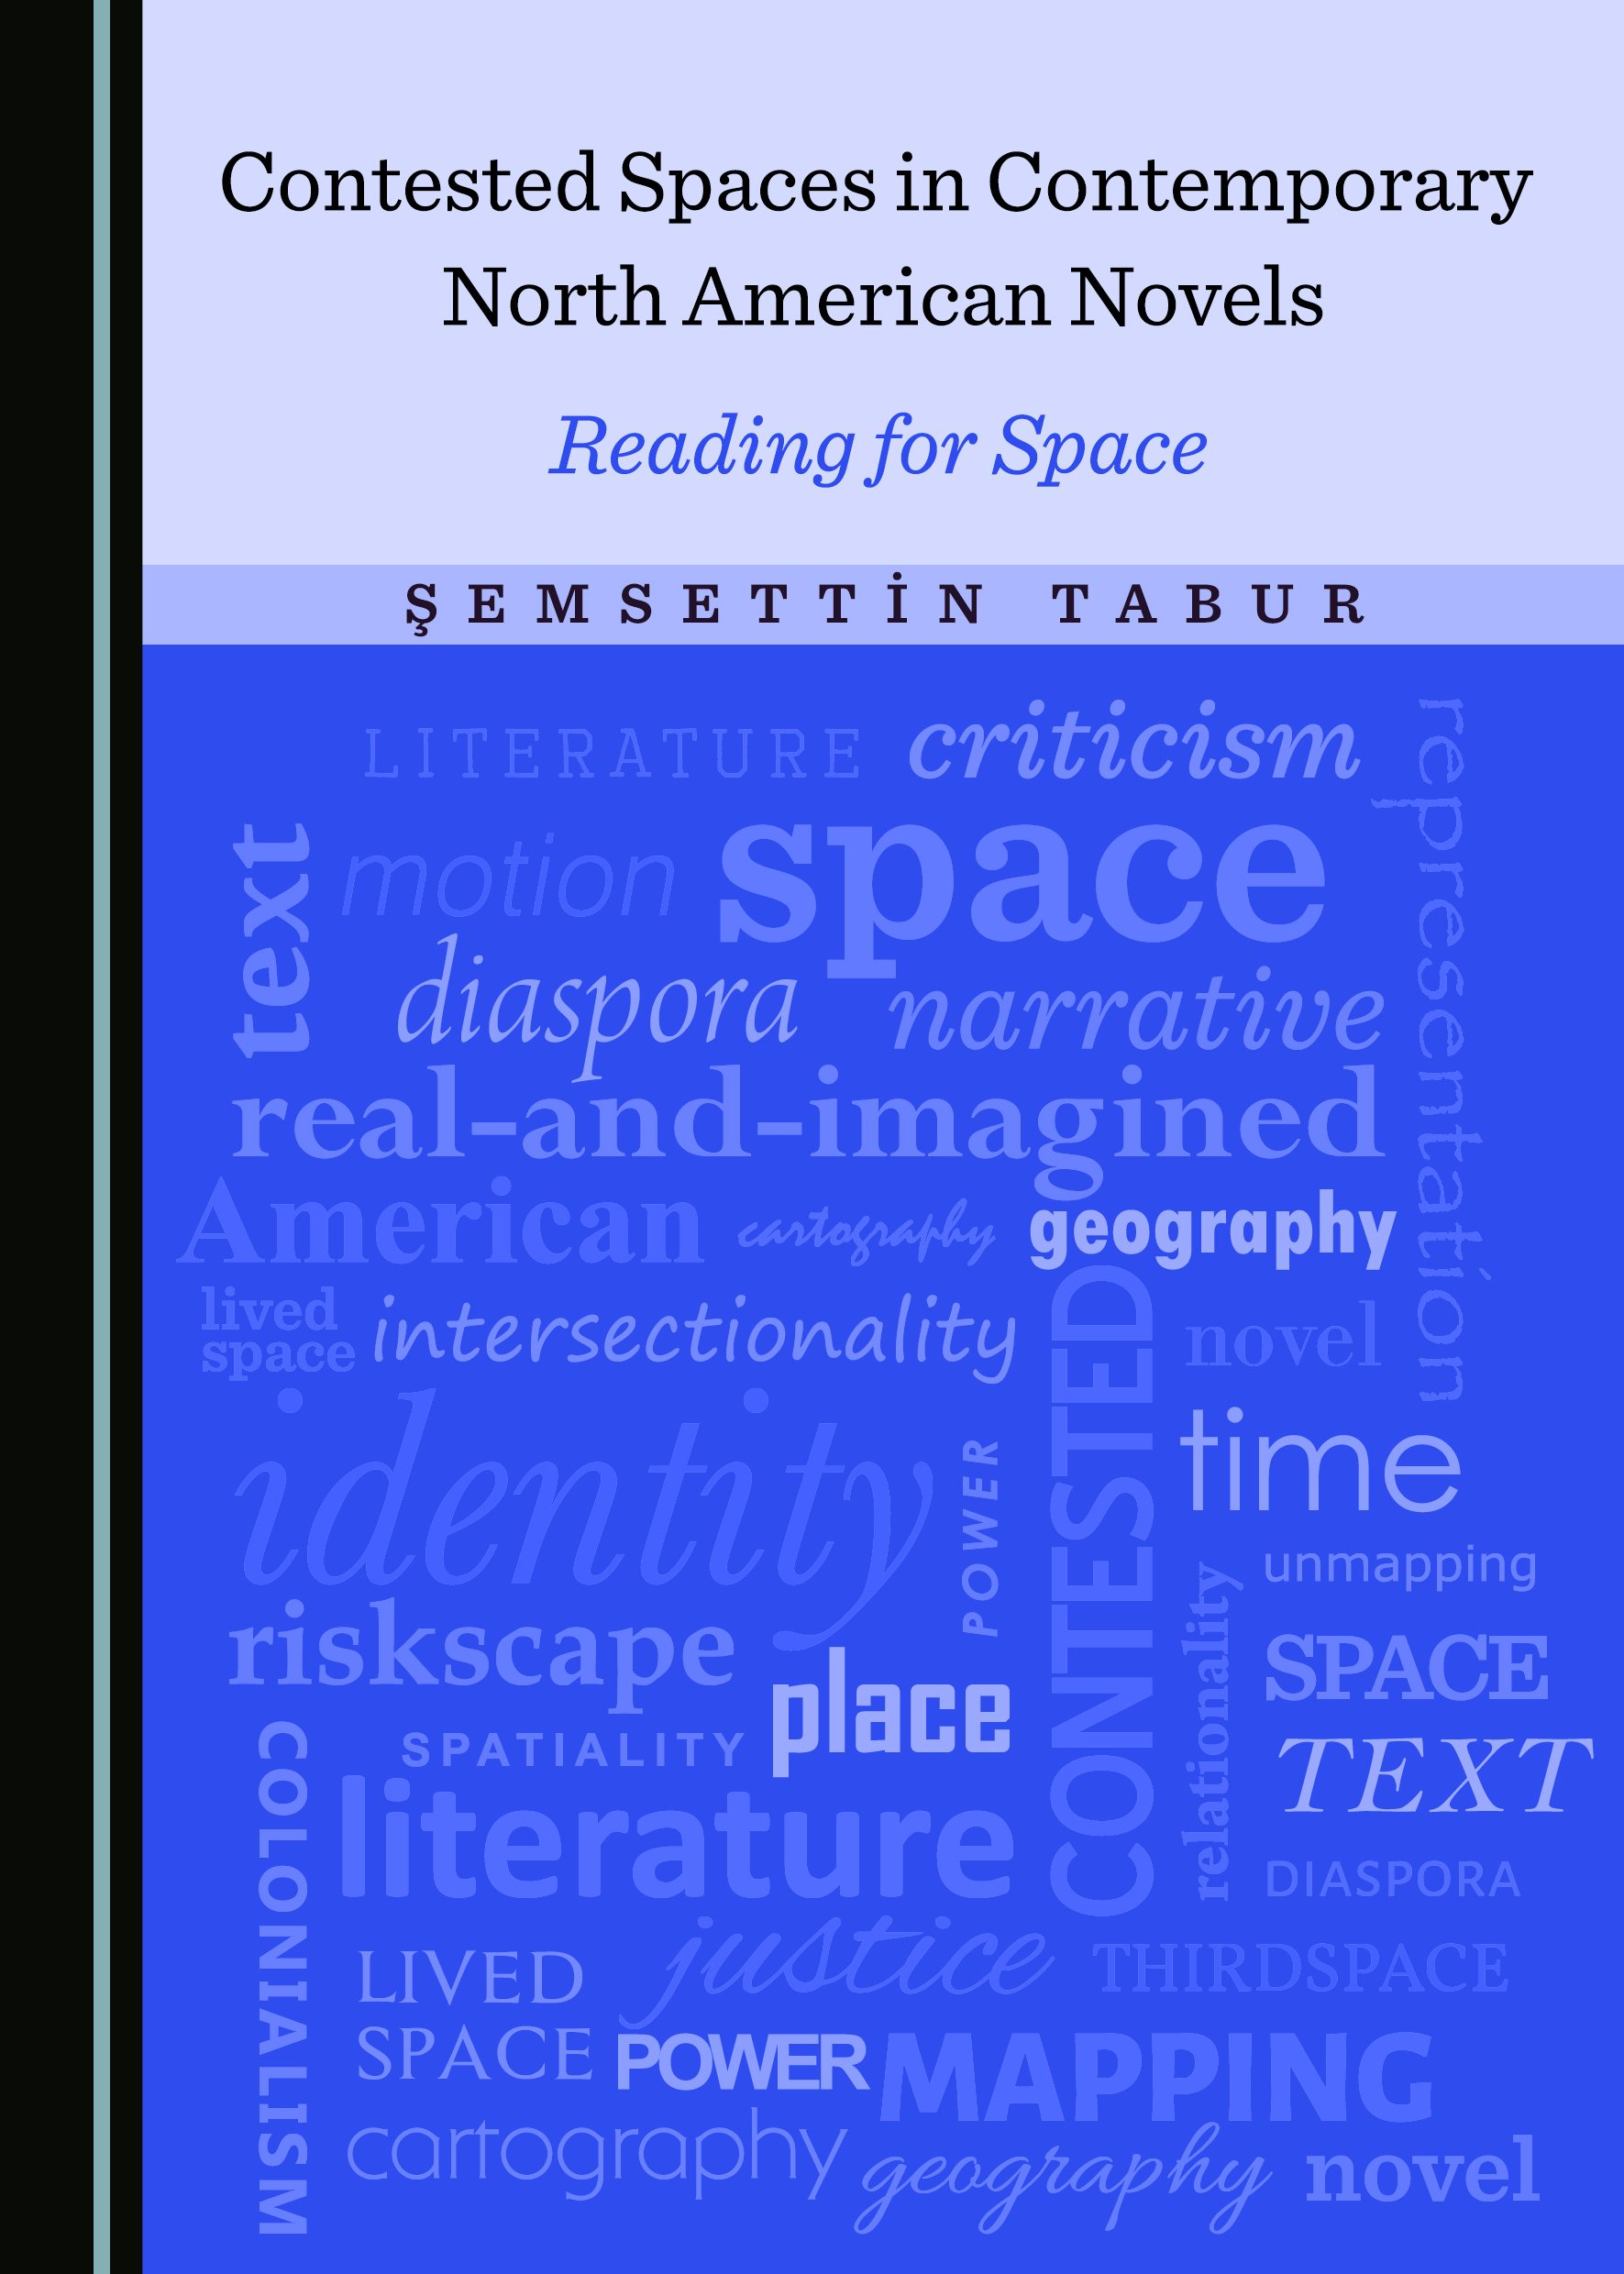 Contested Spaces in Contemporary North American Novels: Reading for Space